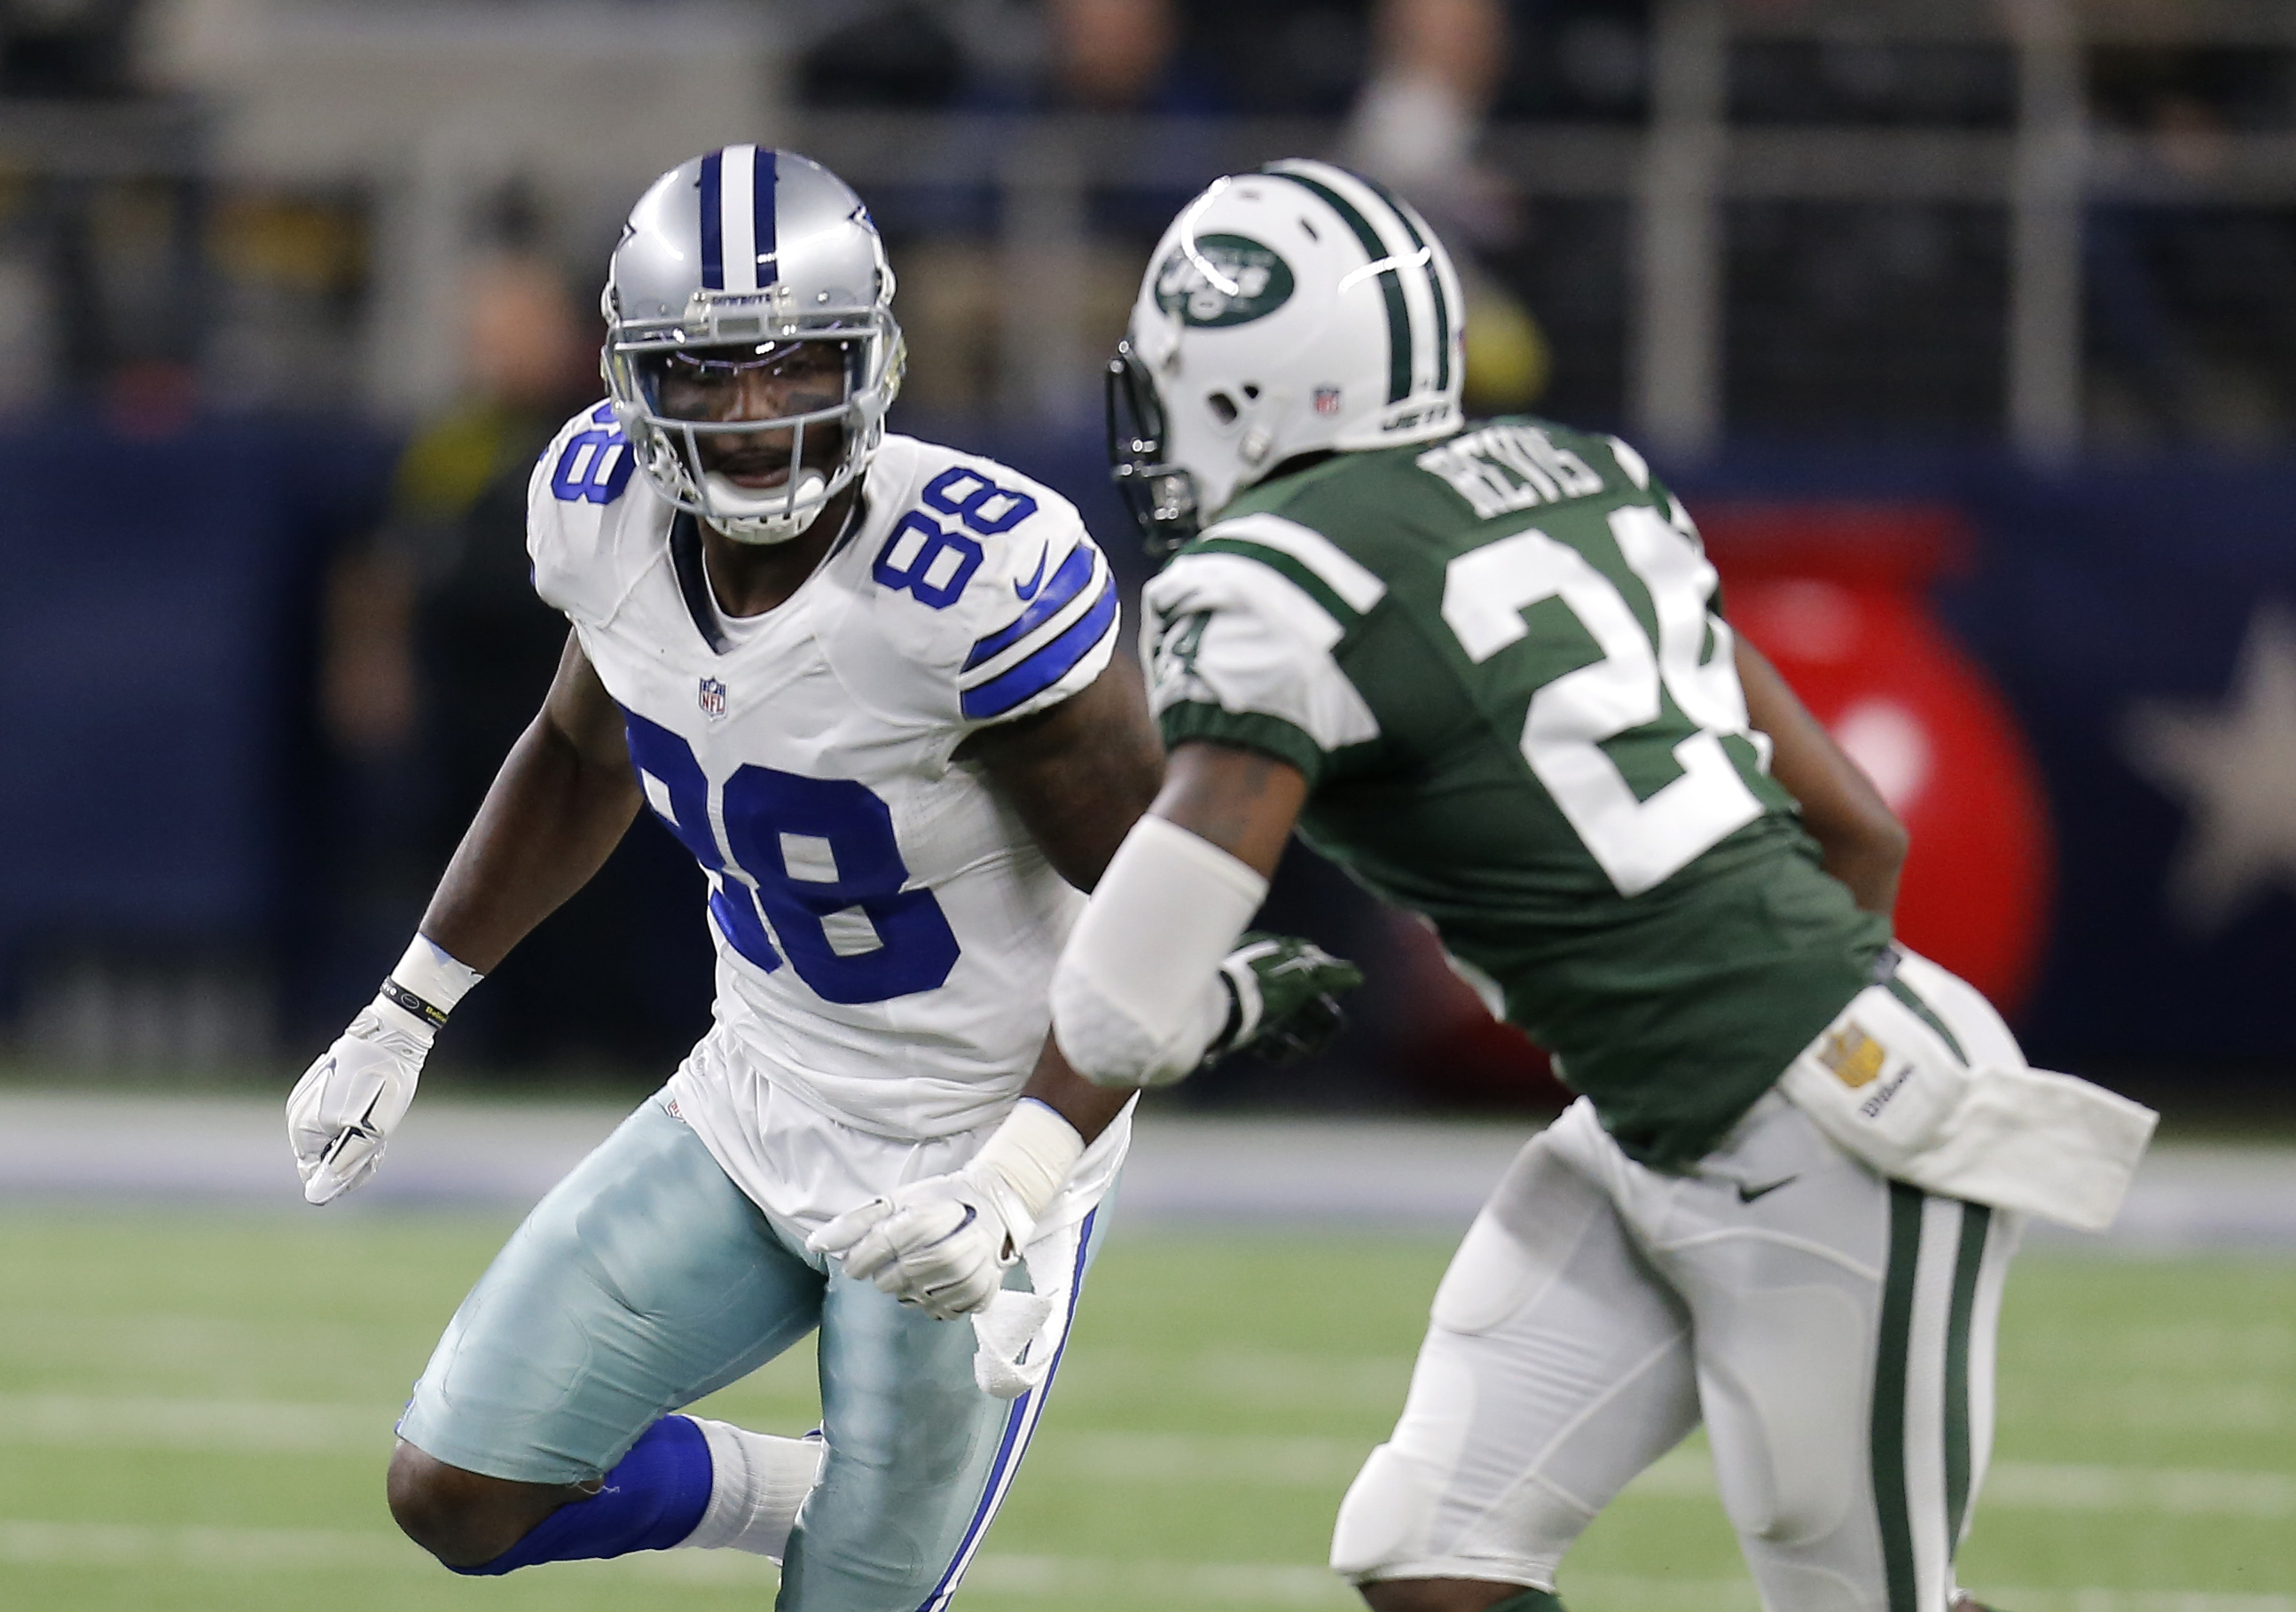 FILE - In this Saturday, Dec. 19, 2015 file photo, Dallas Cowboys wide receiver Dez Bryant (88) runs a route against New York Jets cornerback Darrelle Revis (24) in the first half of an NFL football game in Arlington, Texas. Dez Bryant faces a lawsuit fro